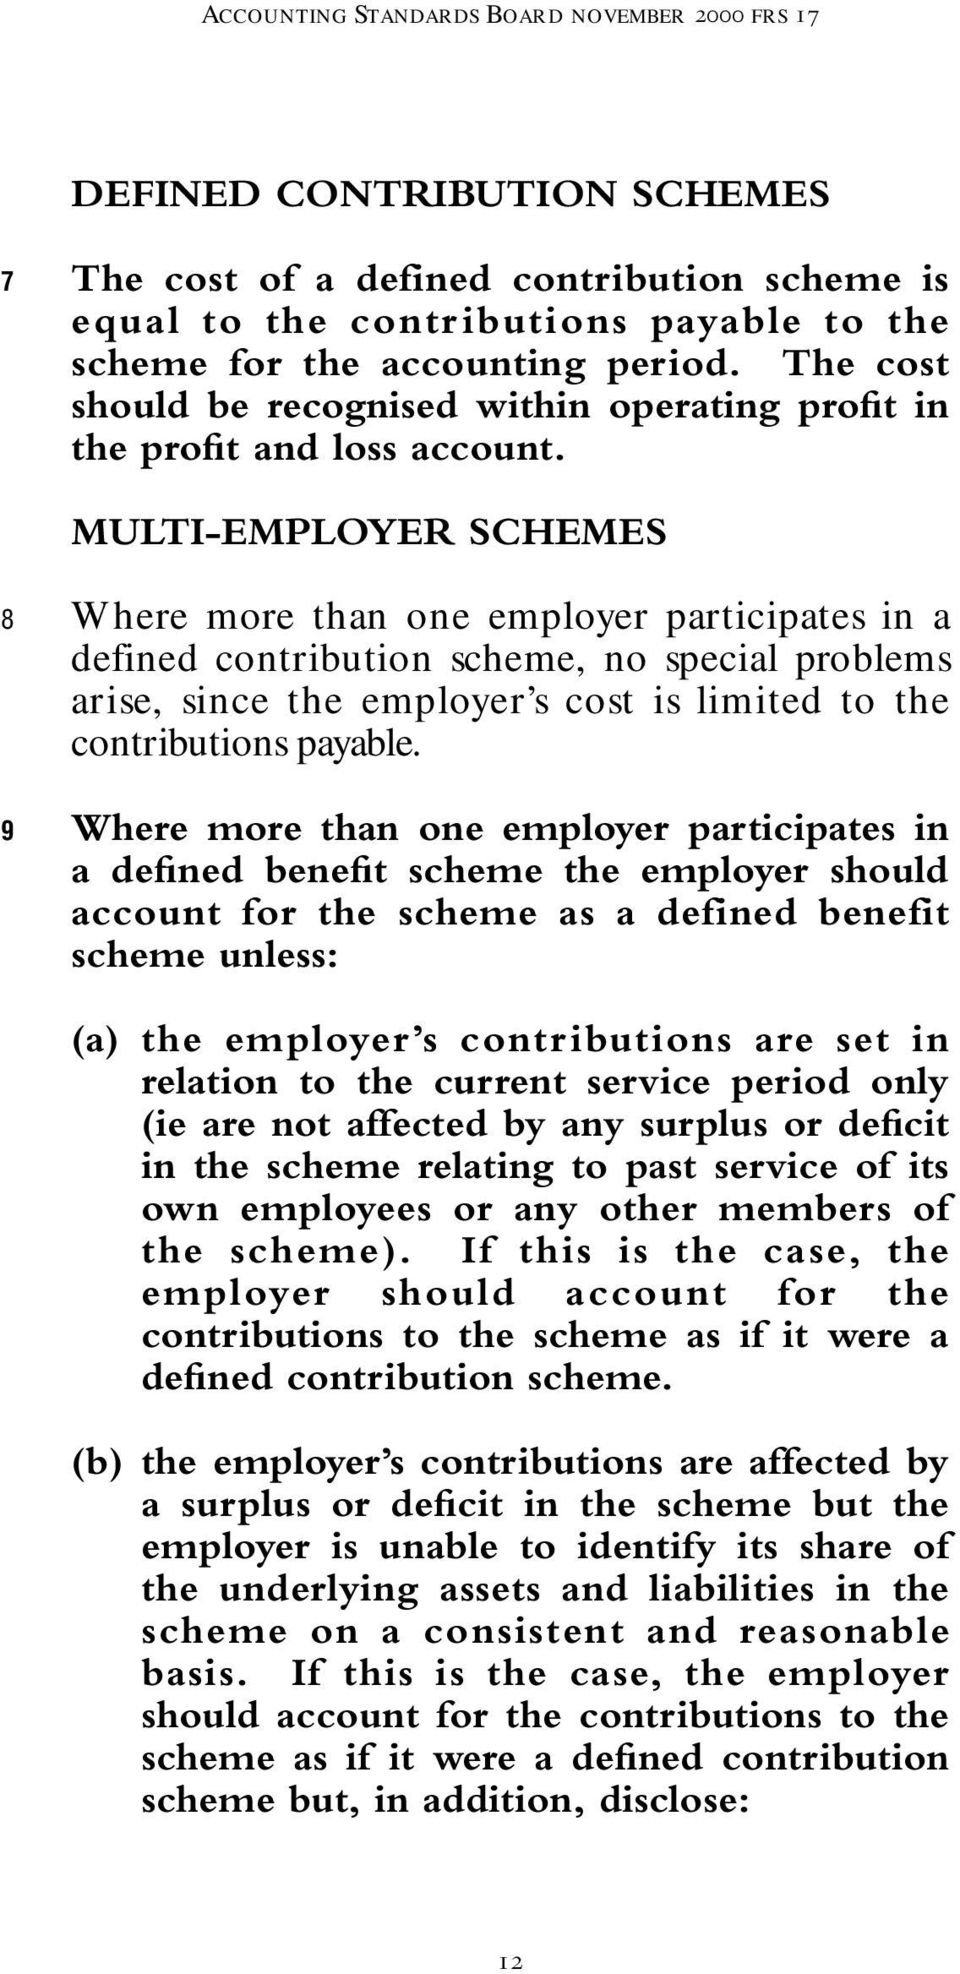 MULTI-EMPLOYER SCHEMES 8 9 Where more than one employer participates in a defined contribution scheme, no special problems arise, since the employer s cost is limited to the contributions payable.